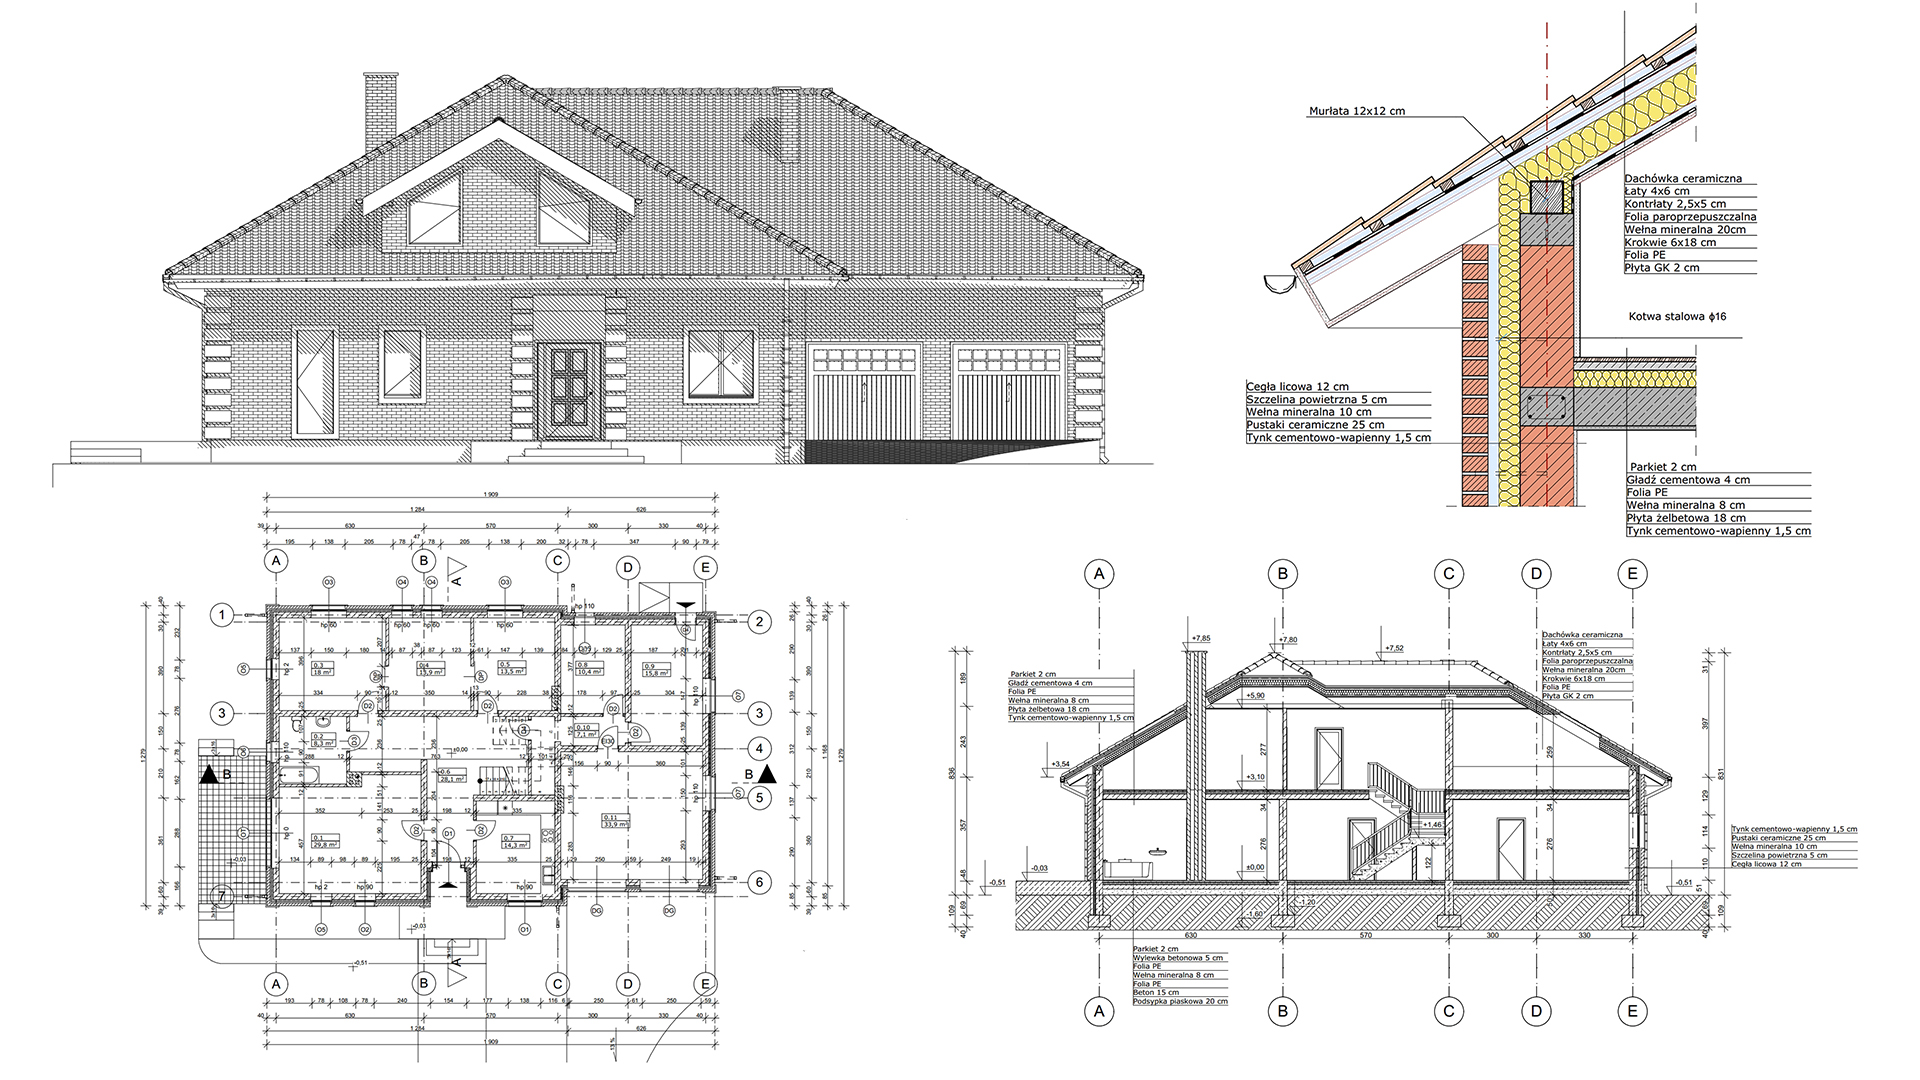 how to move in archicad